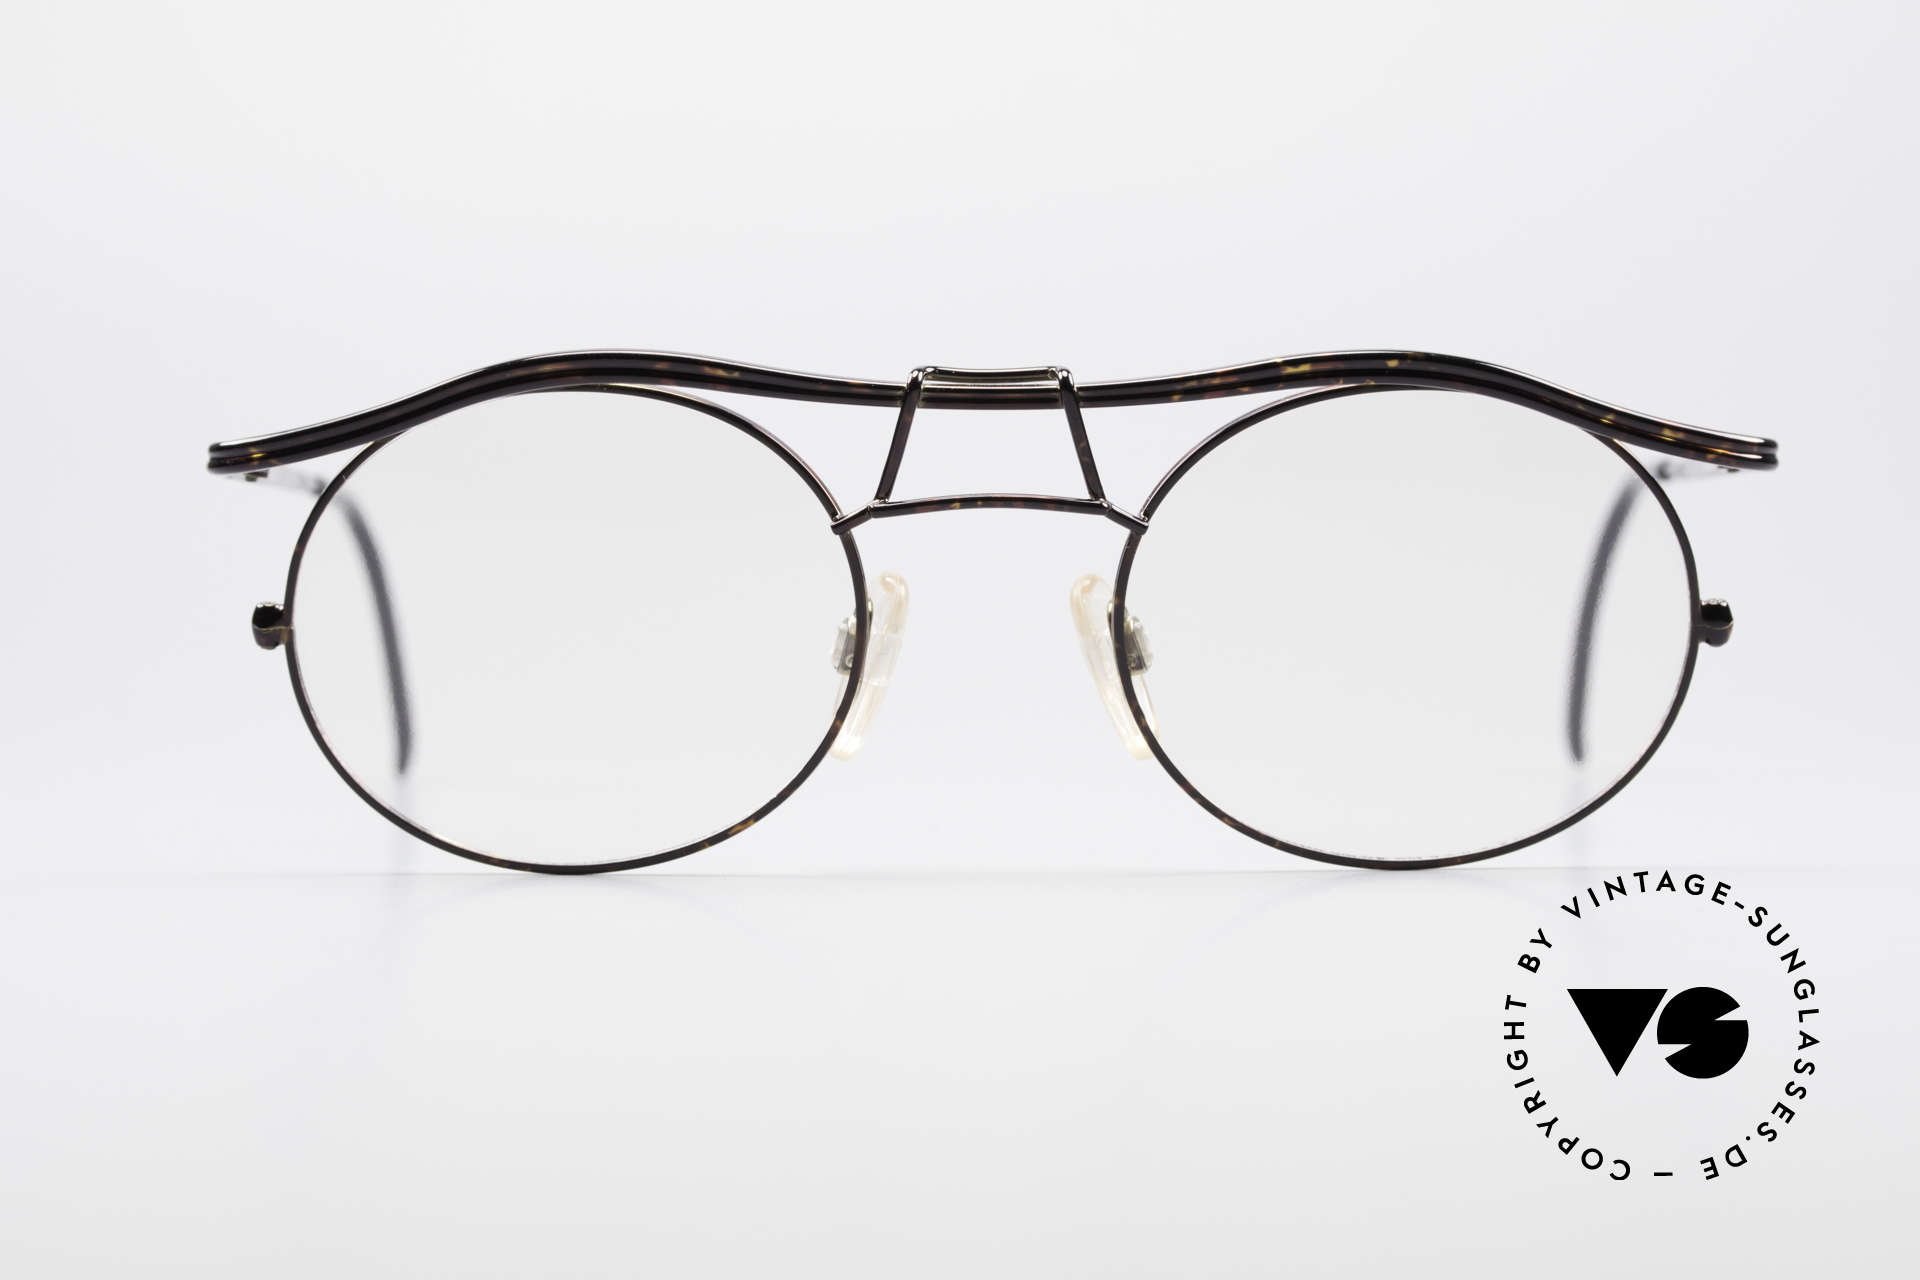 Cazal 1110 - Point 2 90's Industrial Eyeglasses, the frame recalls the 90's industrial / steampunk design, Made for Men